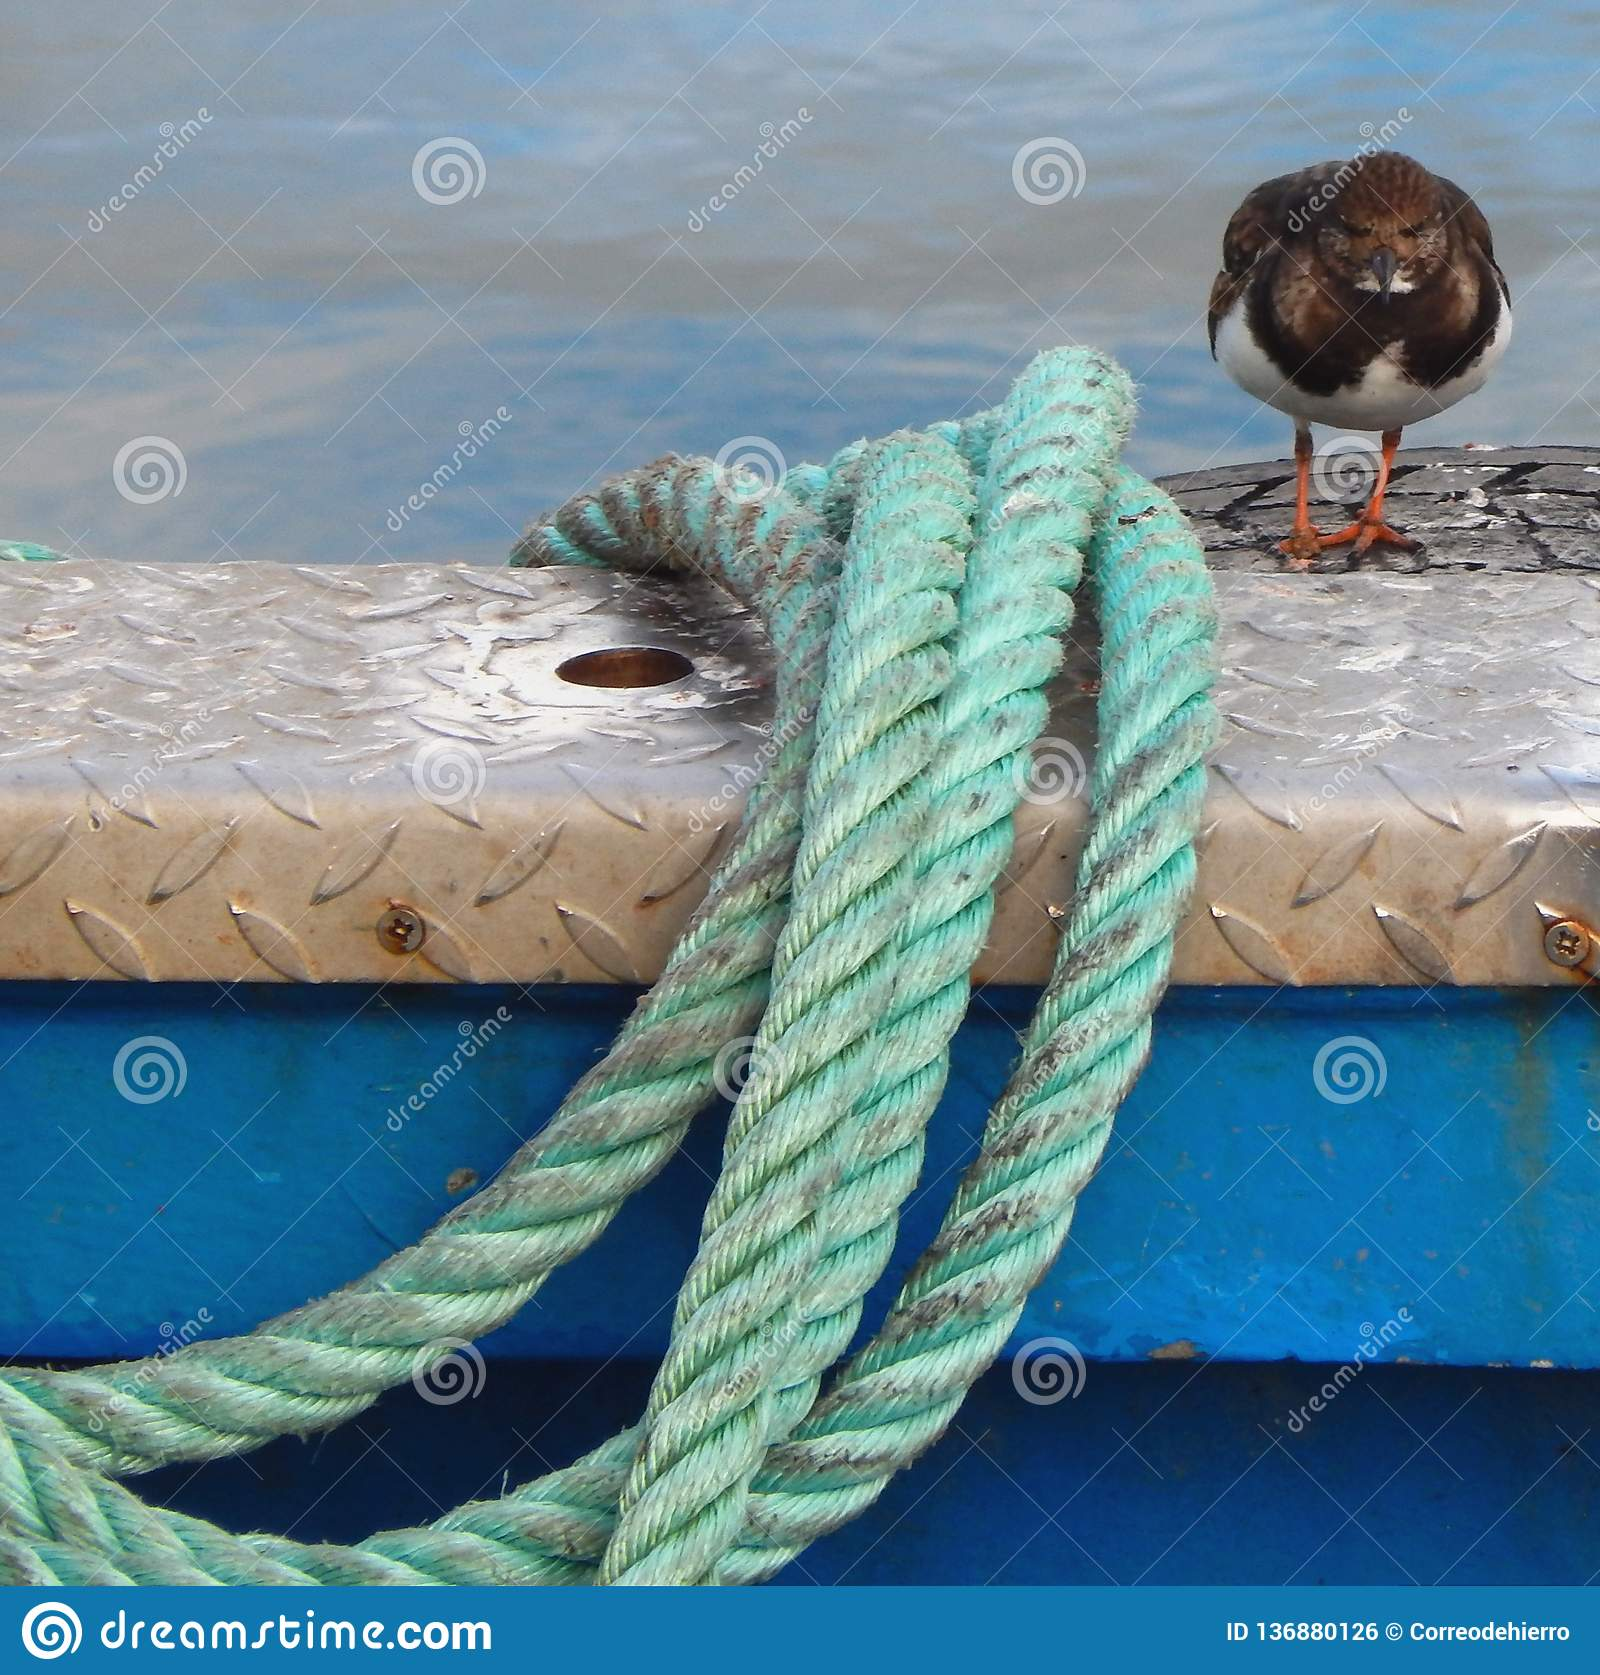 Rope and bird on boat